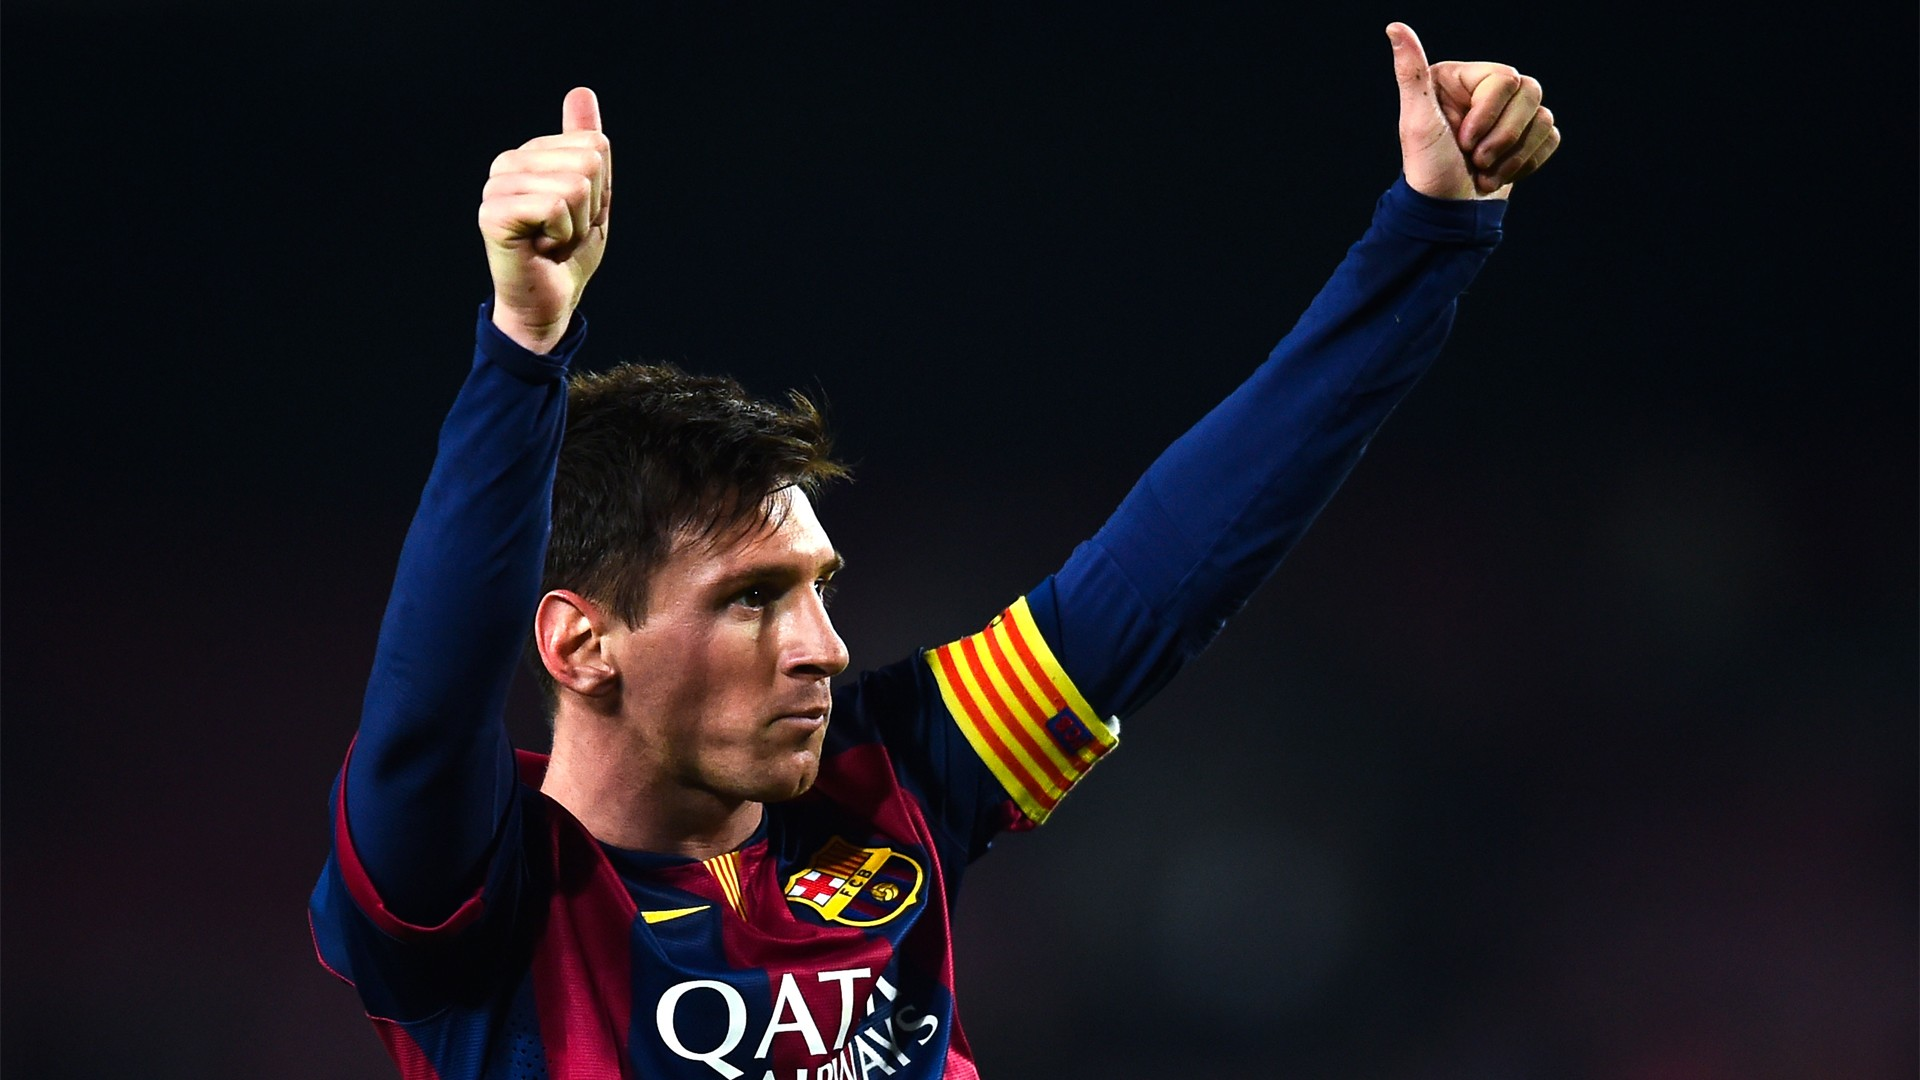 lionel messi wallpaper ·① download free cool backgrounds for